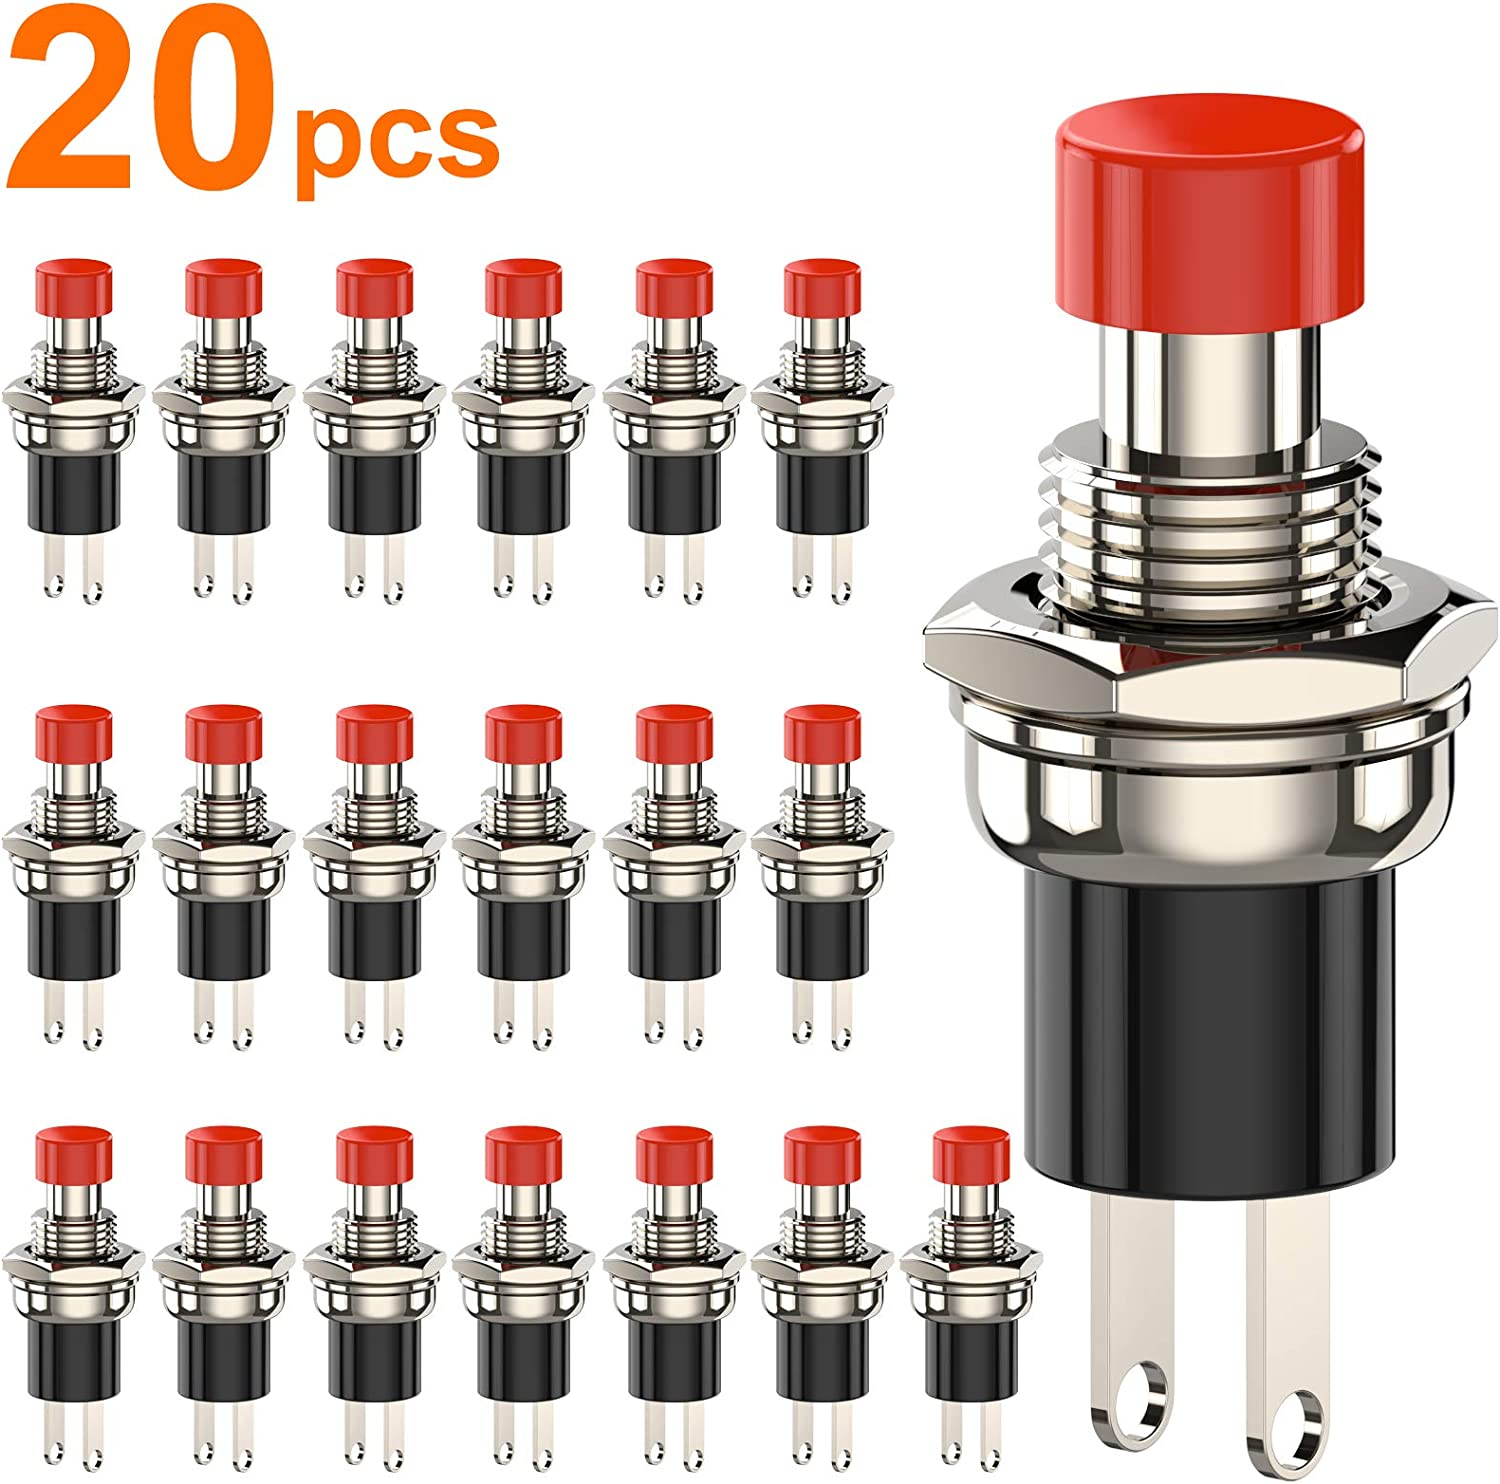 DIYhz Momentary Push Button Switch, 1A 250VAC SPST Mini Pushbutton Switches Normally Open(NO) Red Cap - 20pcs